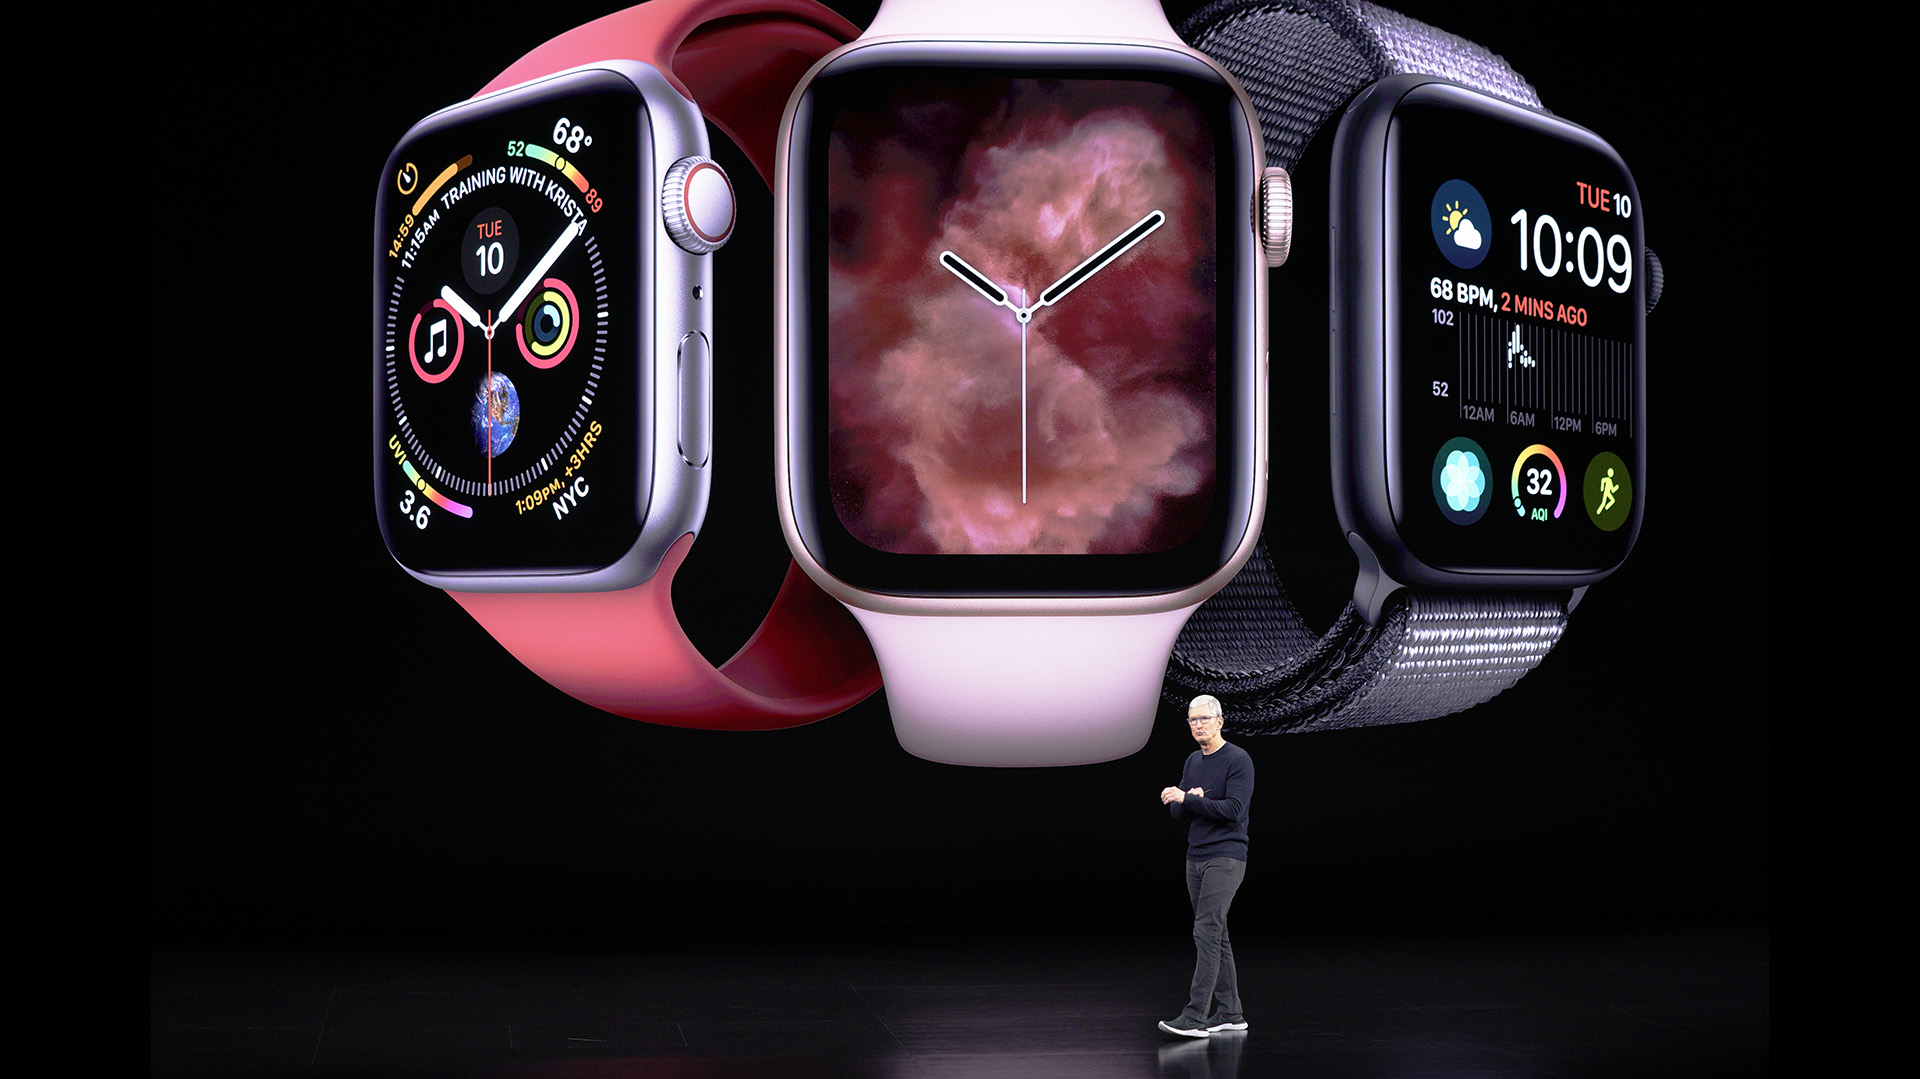 El nuevo Apple Watch tiene pantalla Retina Always On (AP Photo/Tony Avelar)